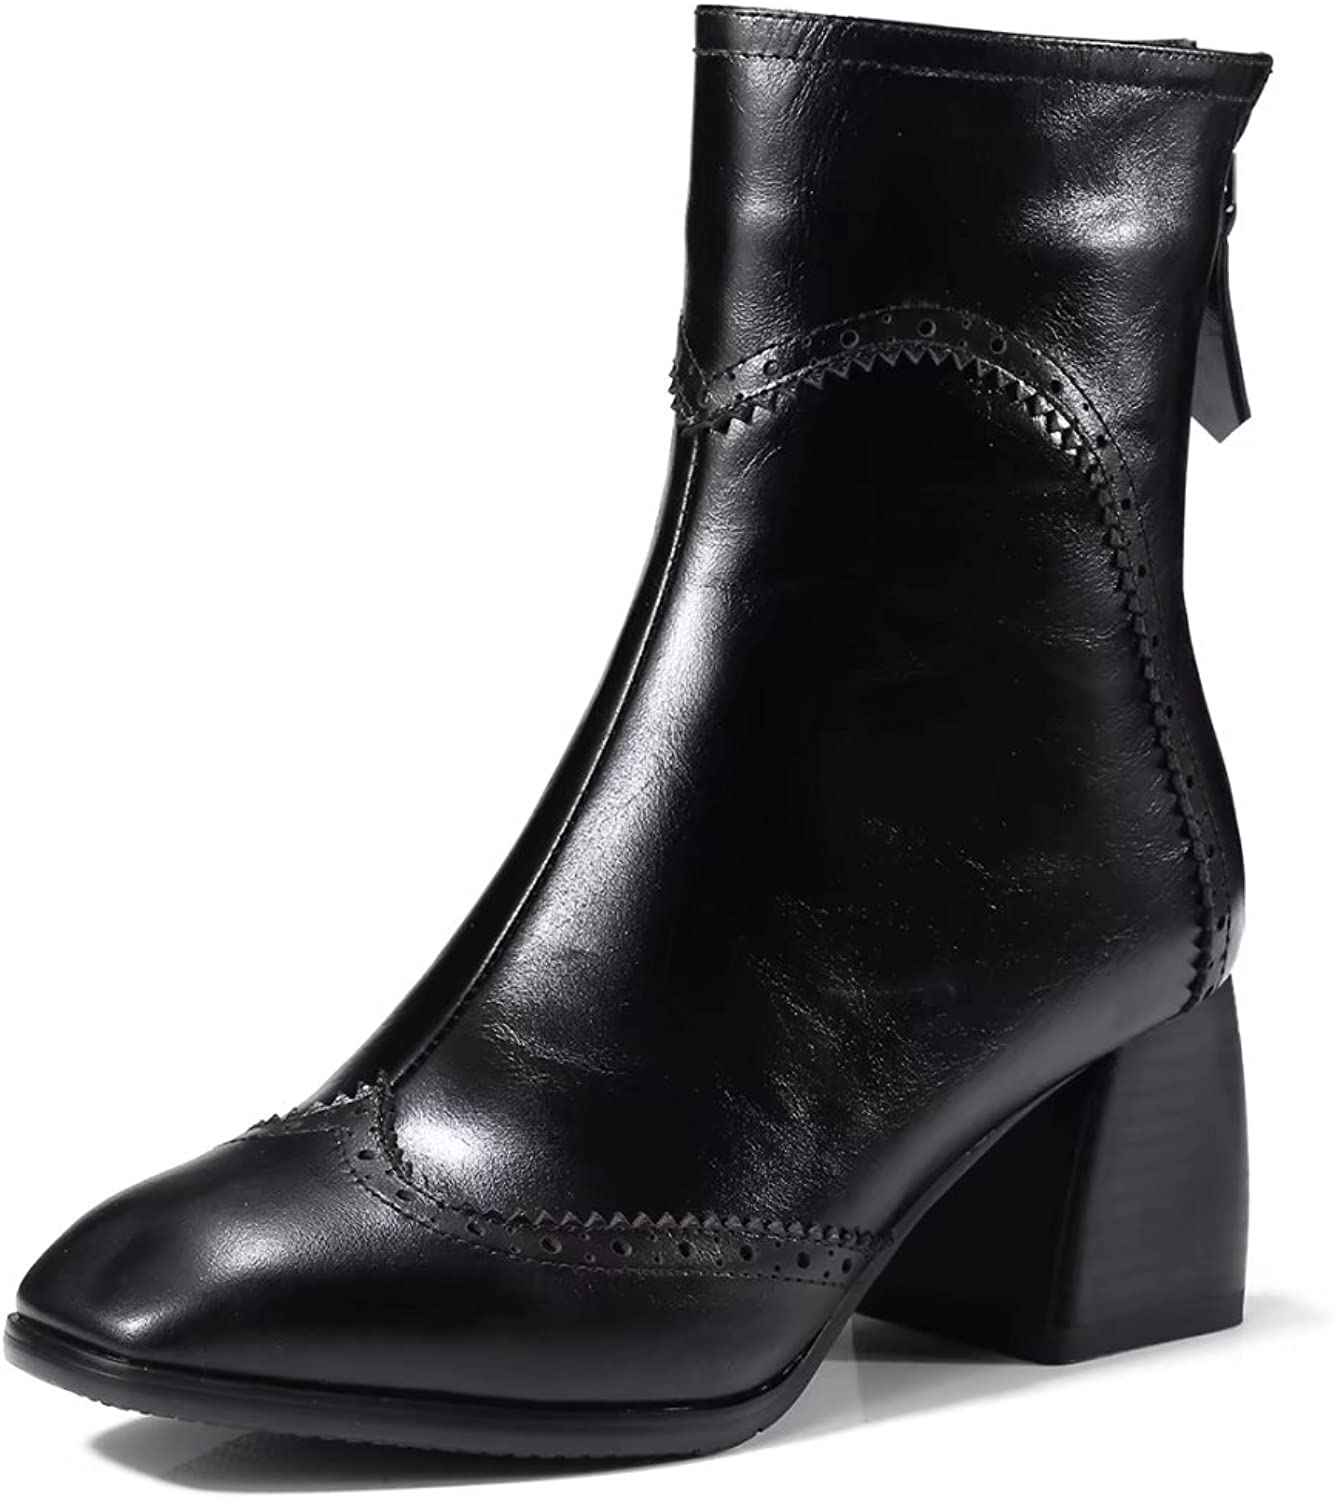 VIMISAOI Women's Black Chunky Heel Square Toe Leather Ankle Boots